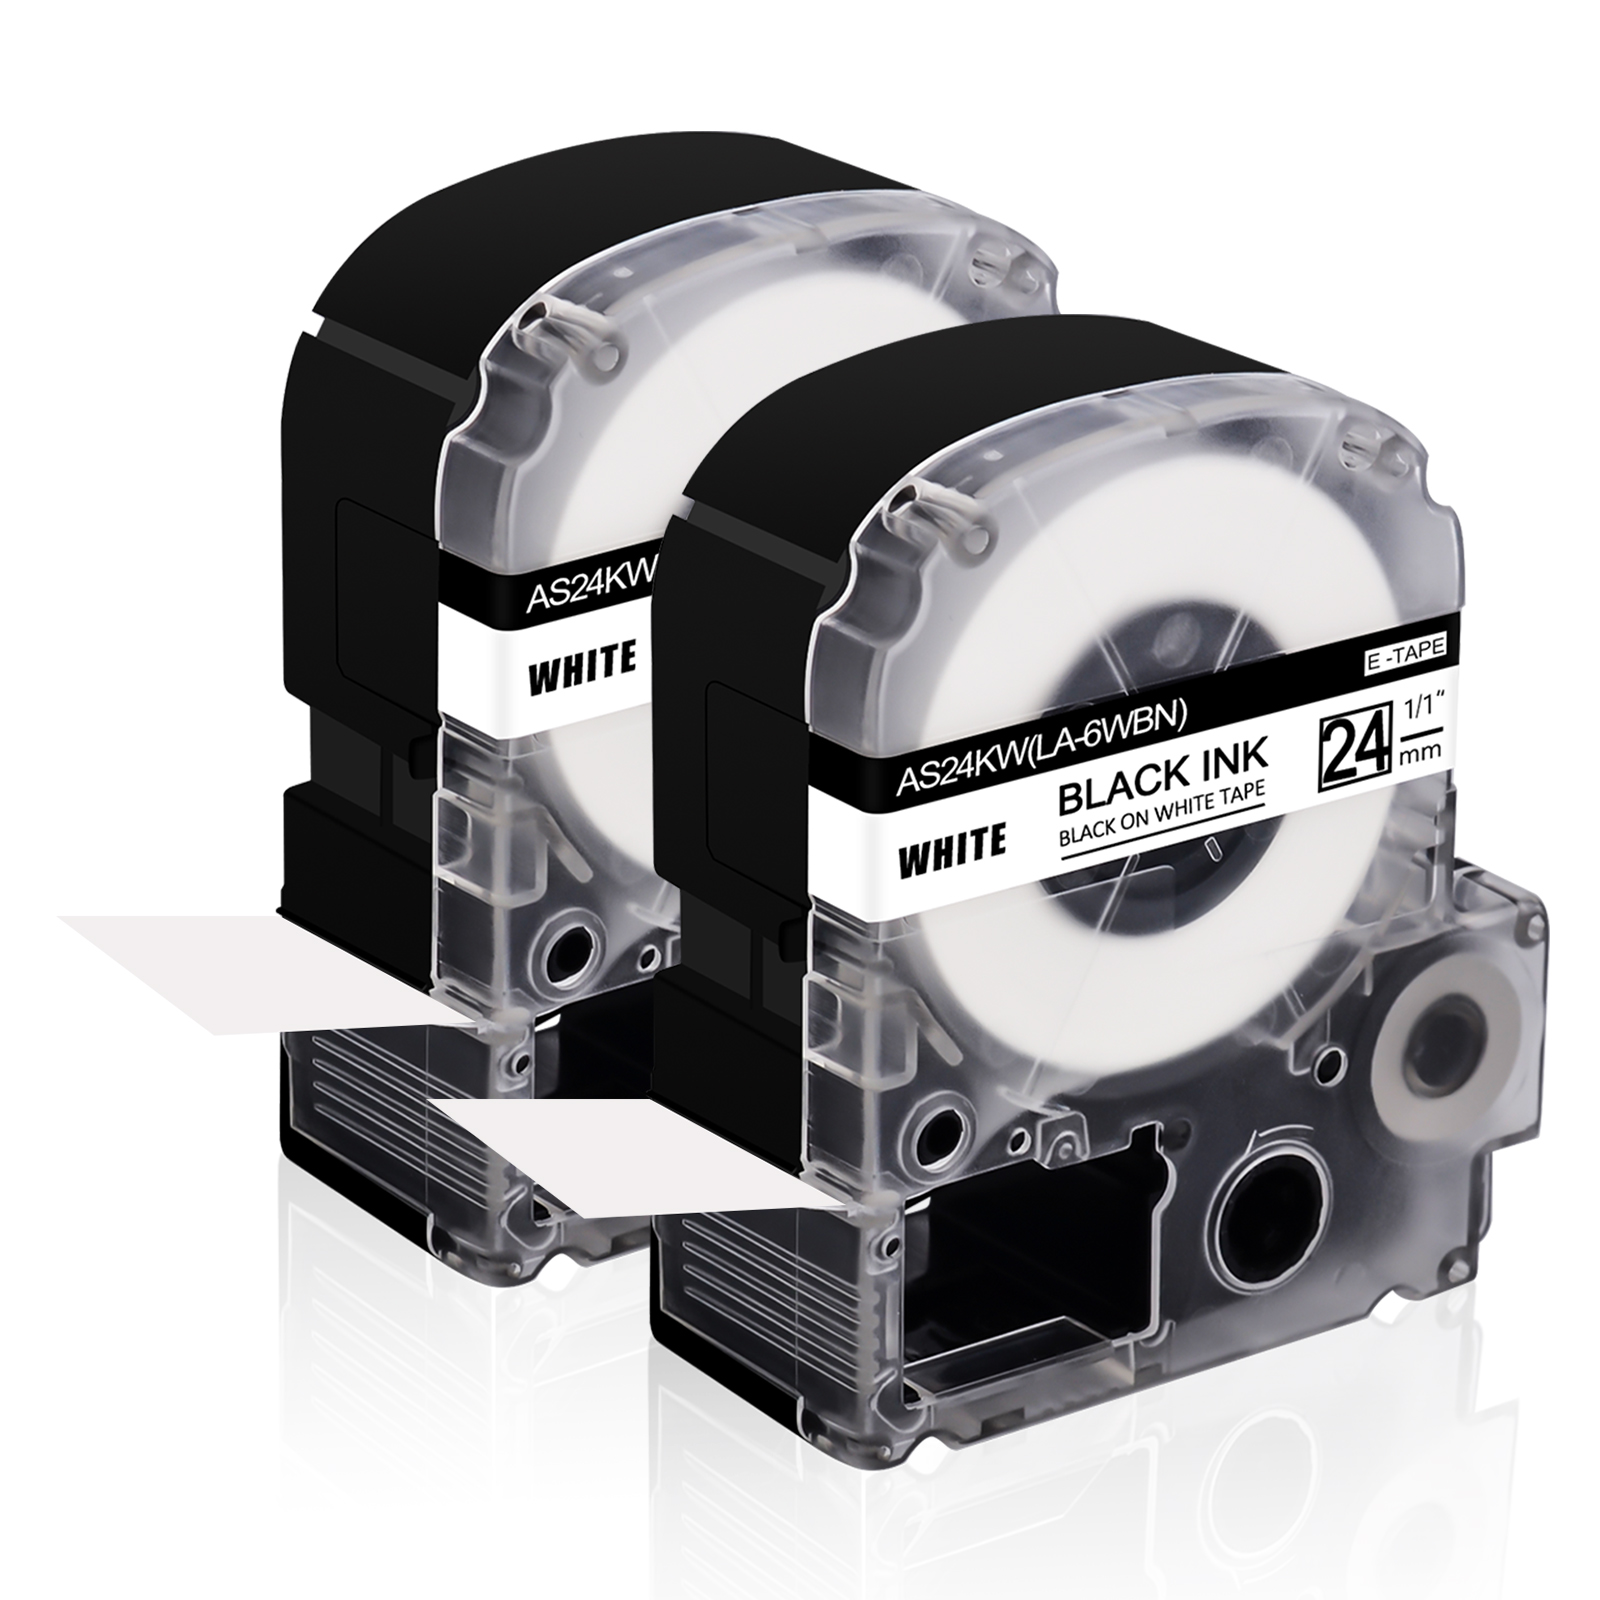 2 Pack BMP21-LAB -0.75 Width ID PAL Samshion M21-750-499 Cloth Label Tape 21 Length Compatible Brady High Adhesion Nylon Label Tape Black on White Work with BMP21-PLUS